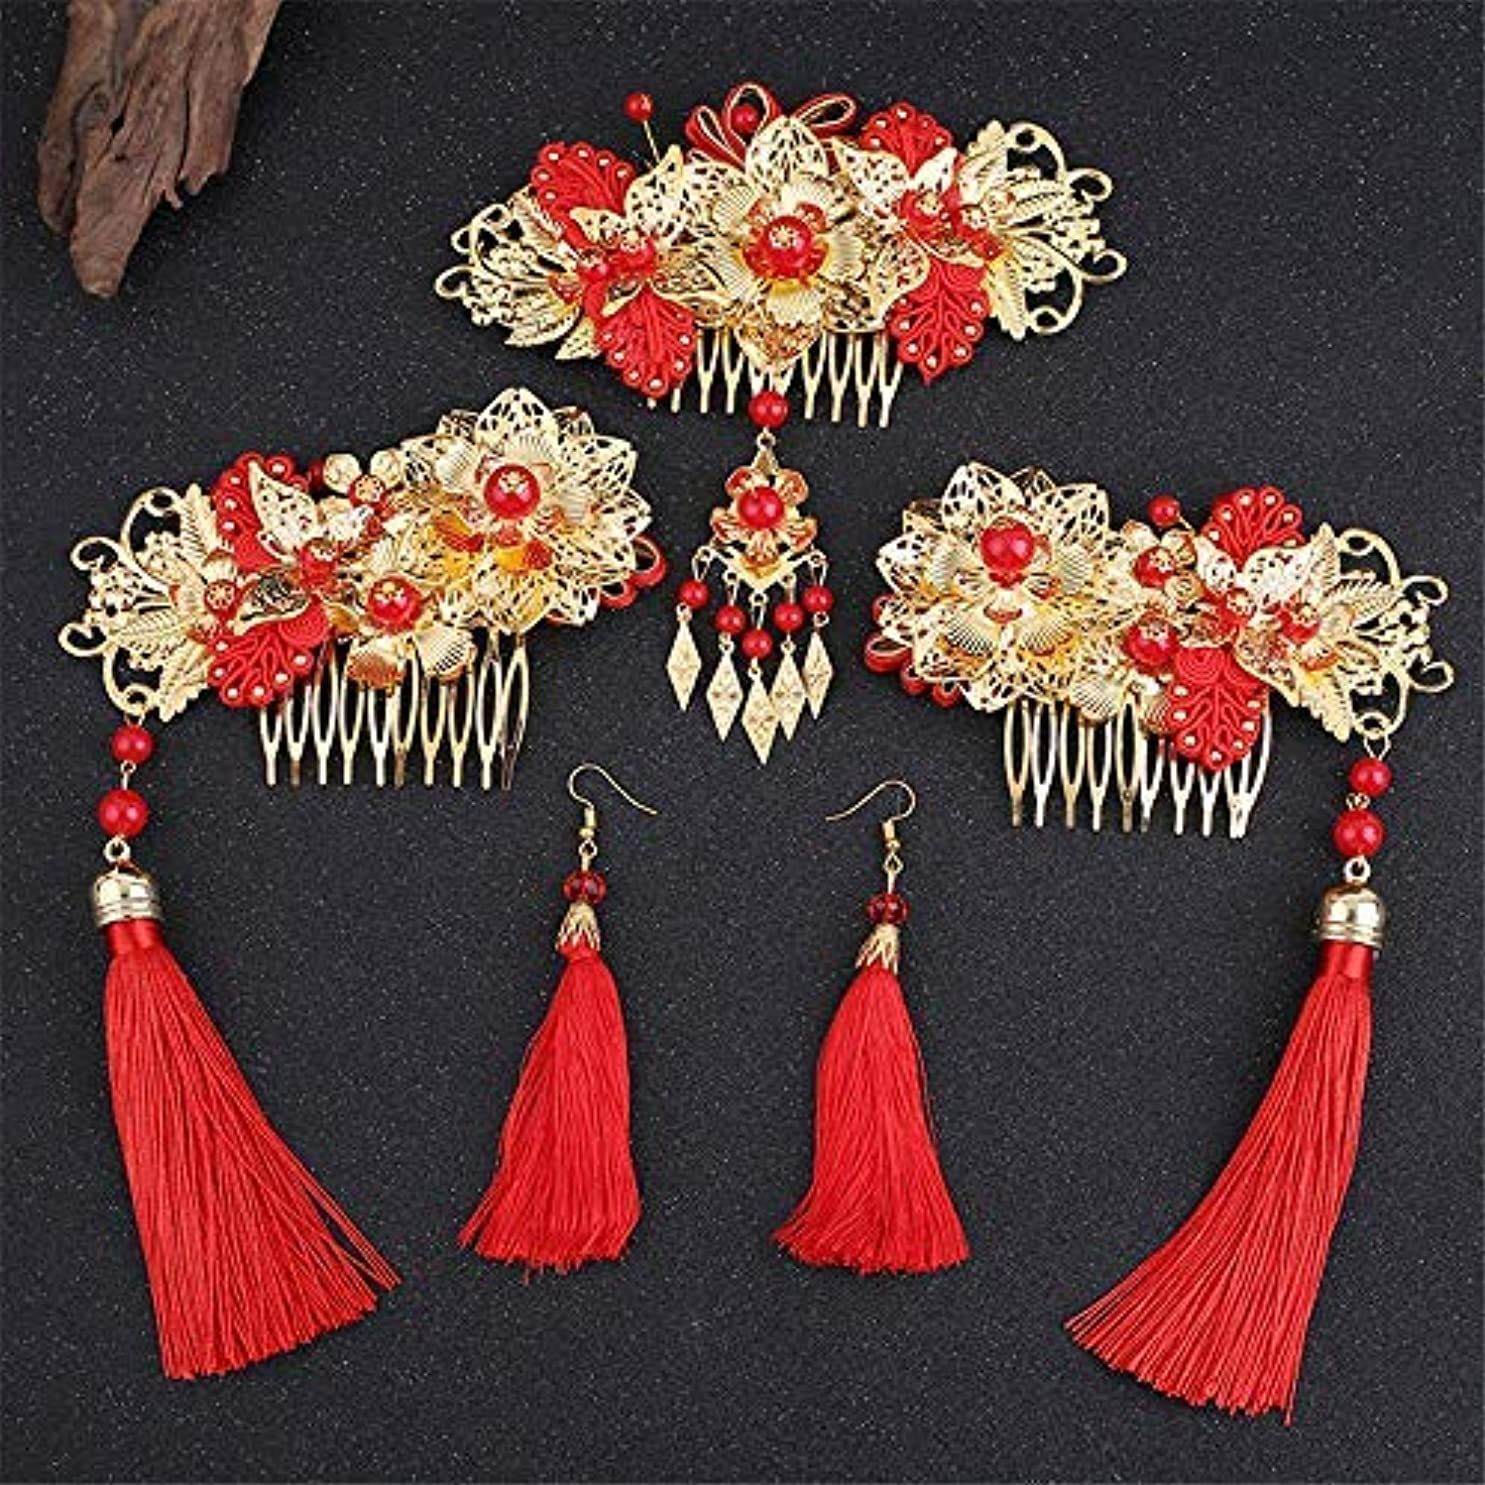 Wedding Classical Traditional Chinese Wedding Bride Hair Accessory With Combs wedding accessories [並行輸入品]